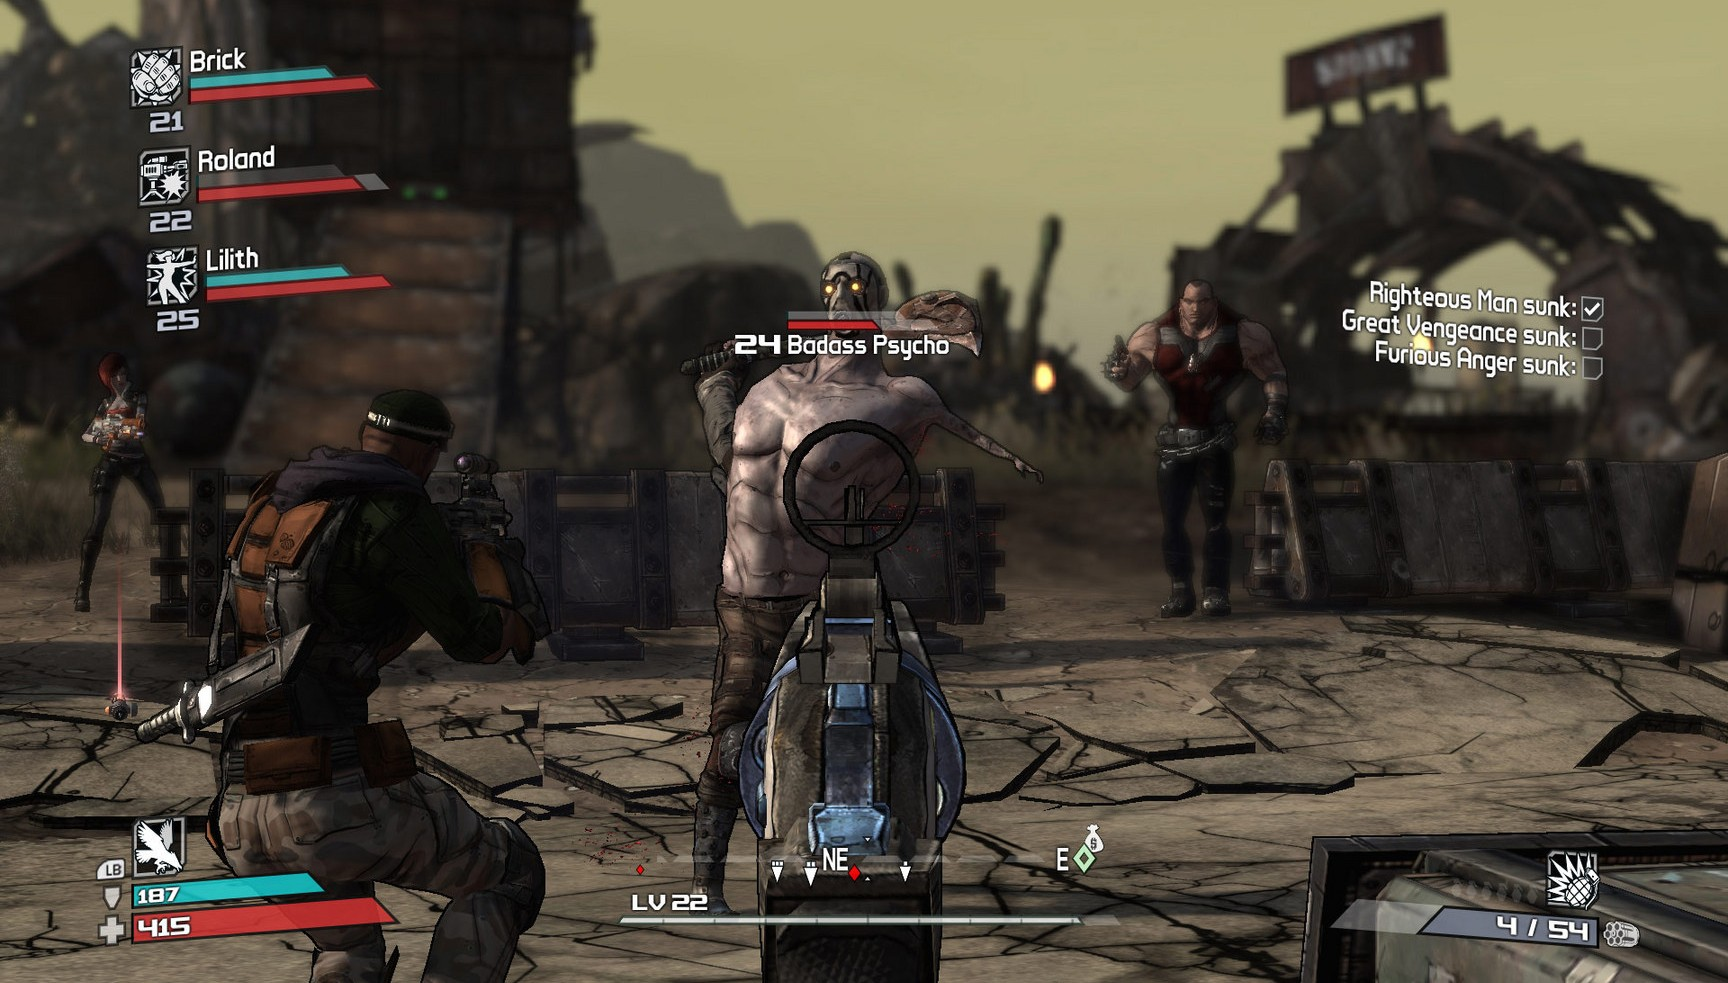 Borderlands patch adds Steamworks support, reinstates multiplayer